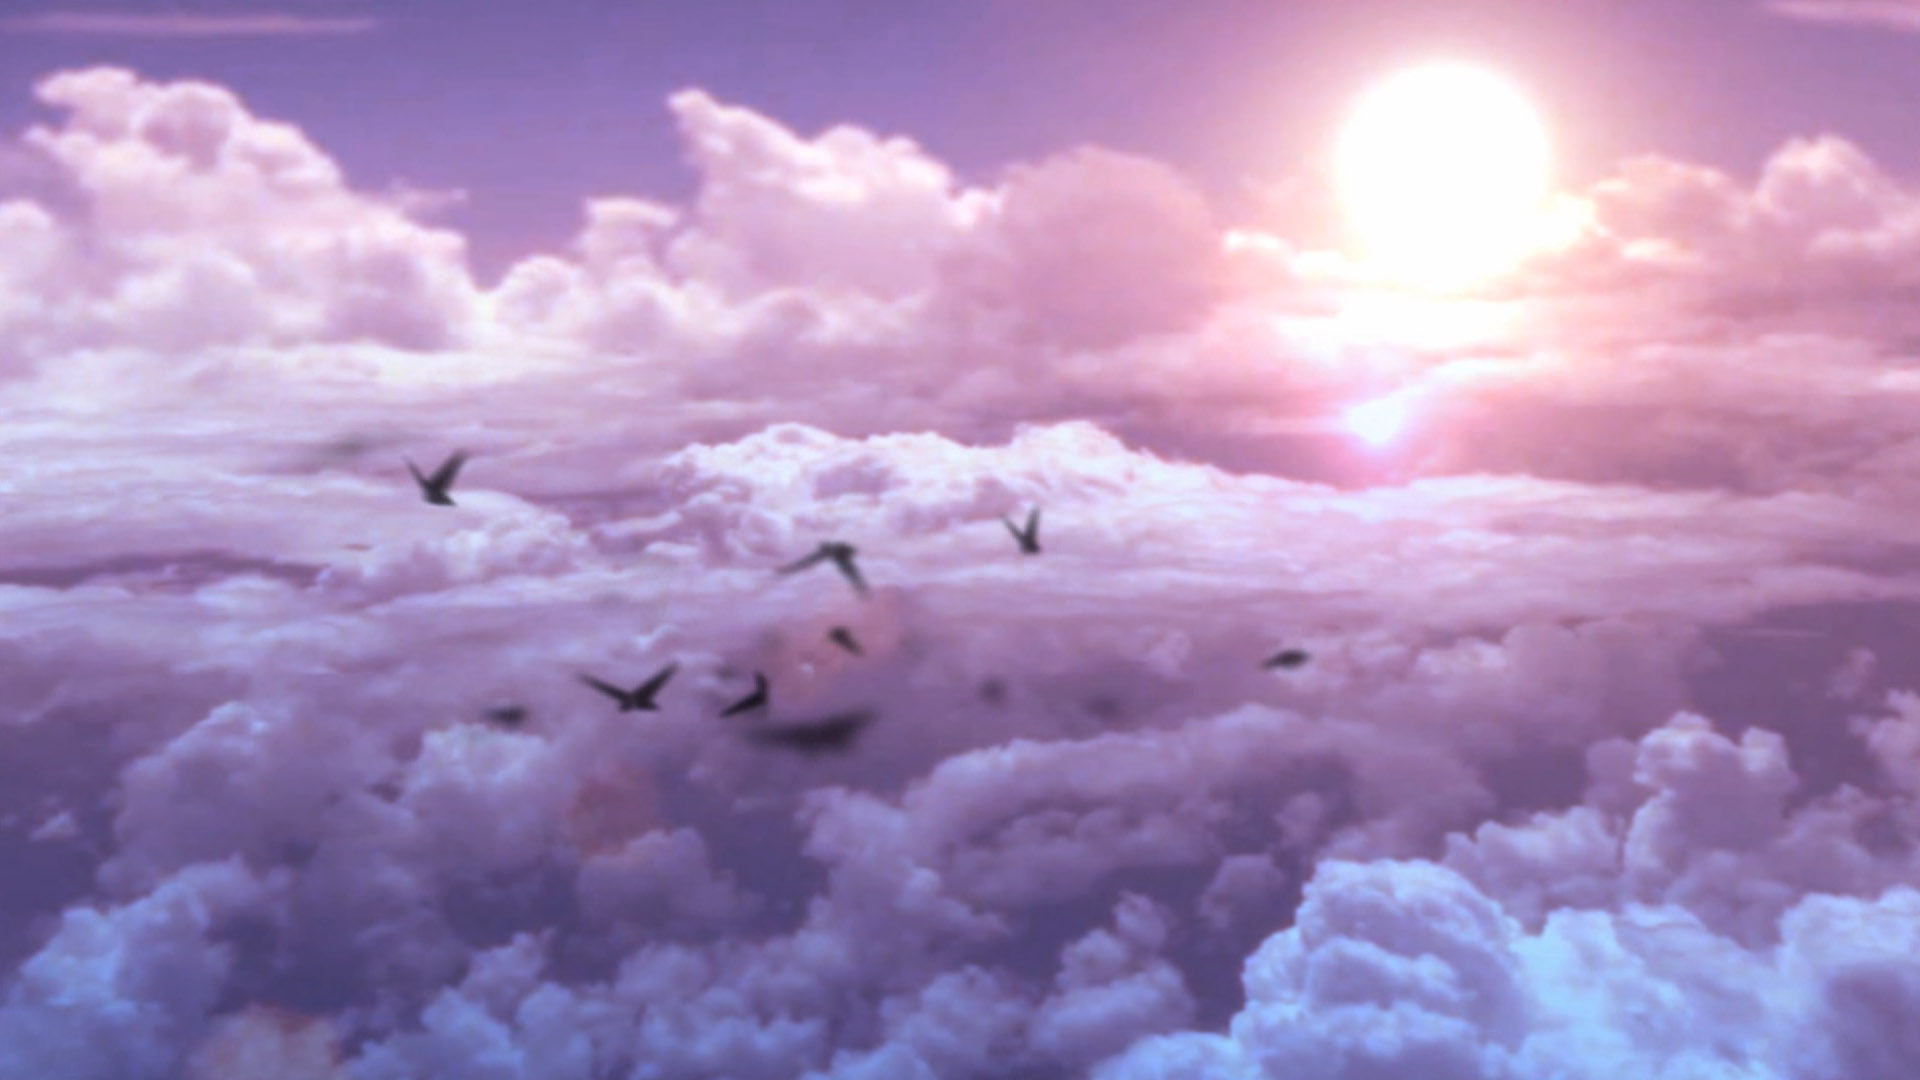 dreamscene video wallpaper download free